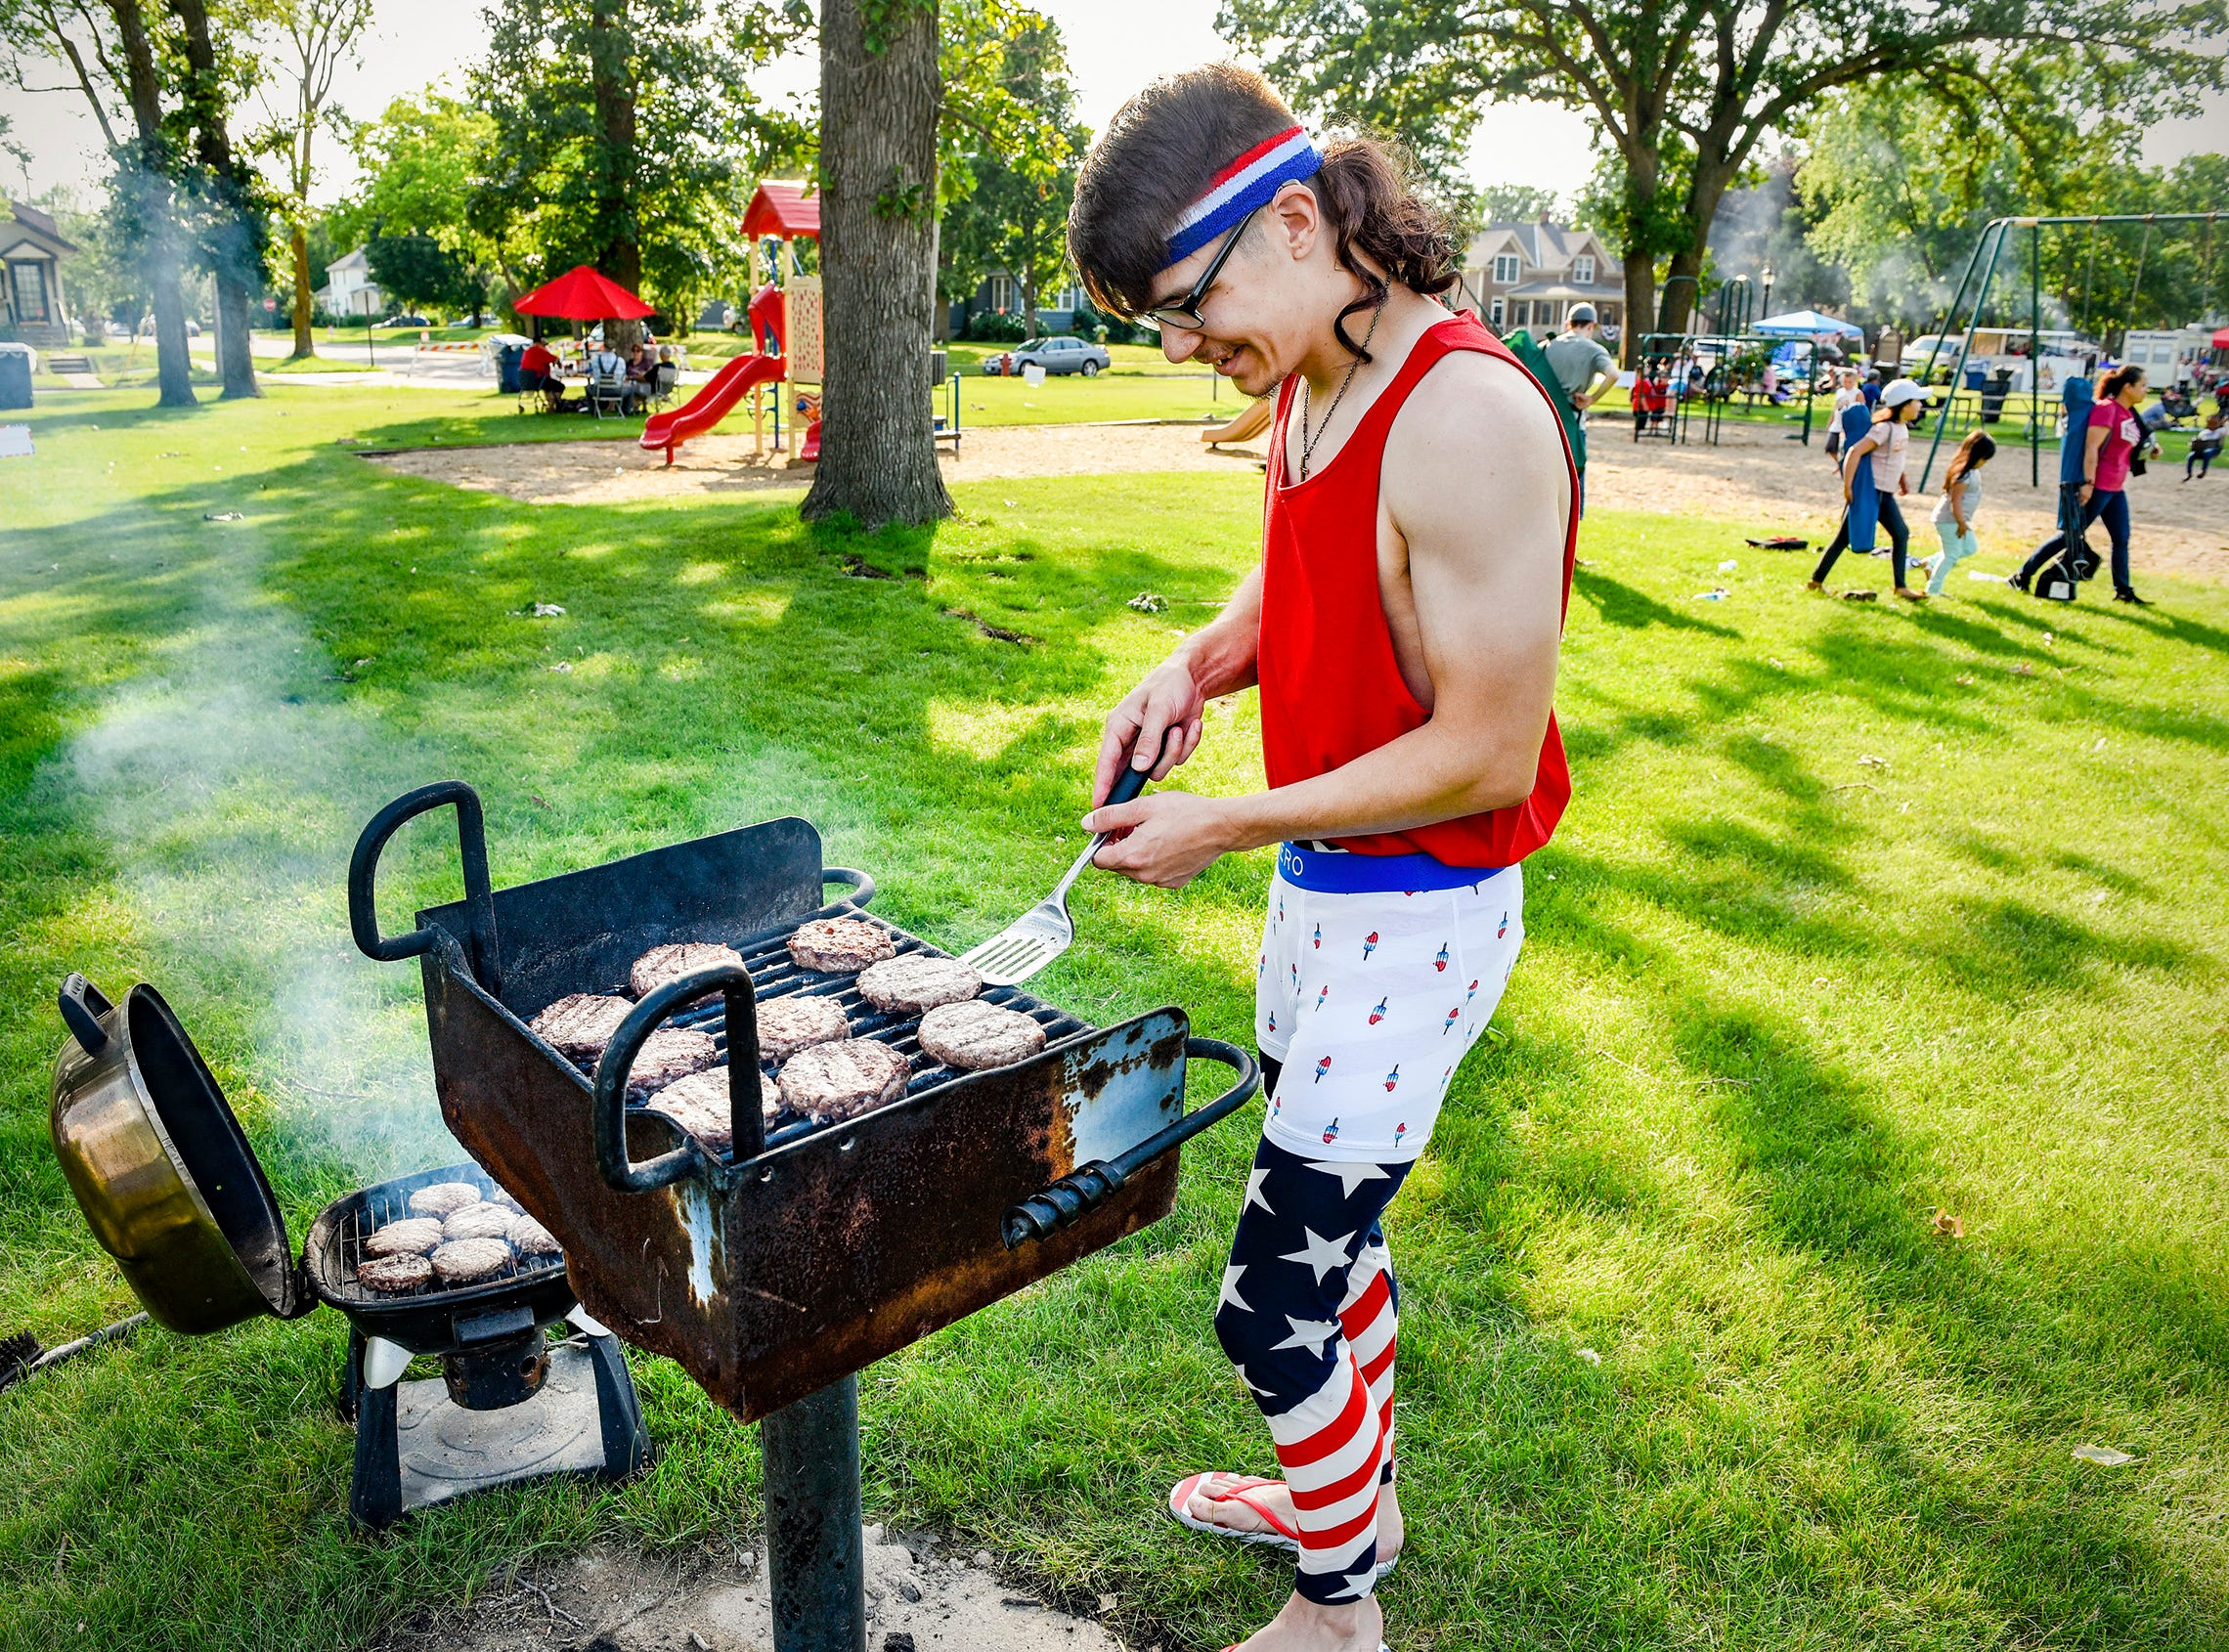 Chuck Schumacher wrangles a pair of grills as he makes hamburgers for the family In Hester Park before the fireworks Wednesday, July 4, in St. Cloud.